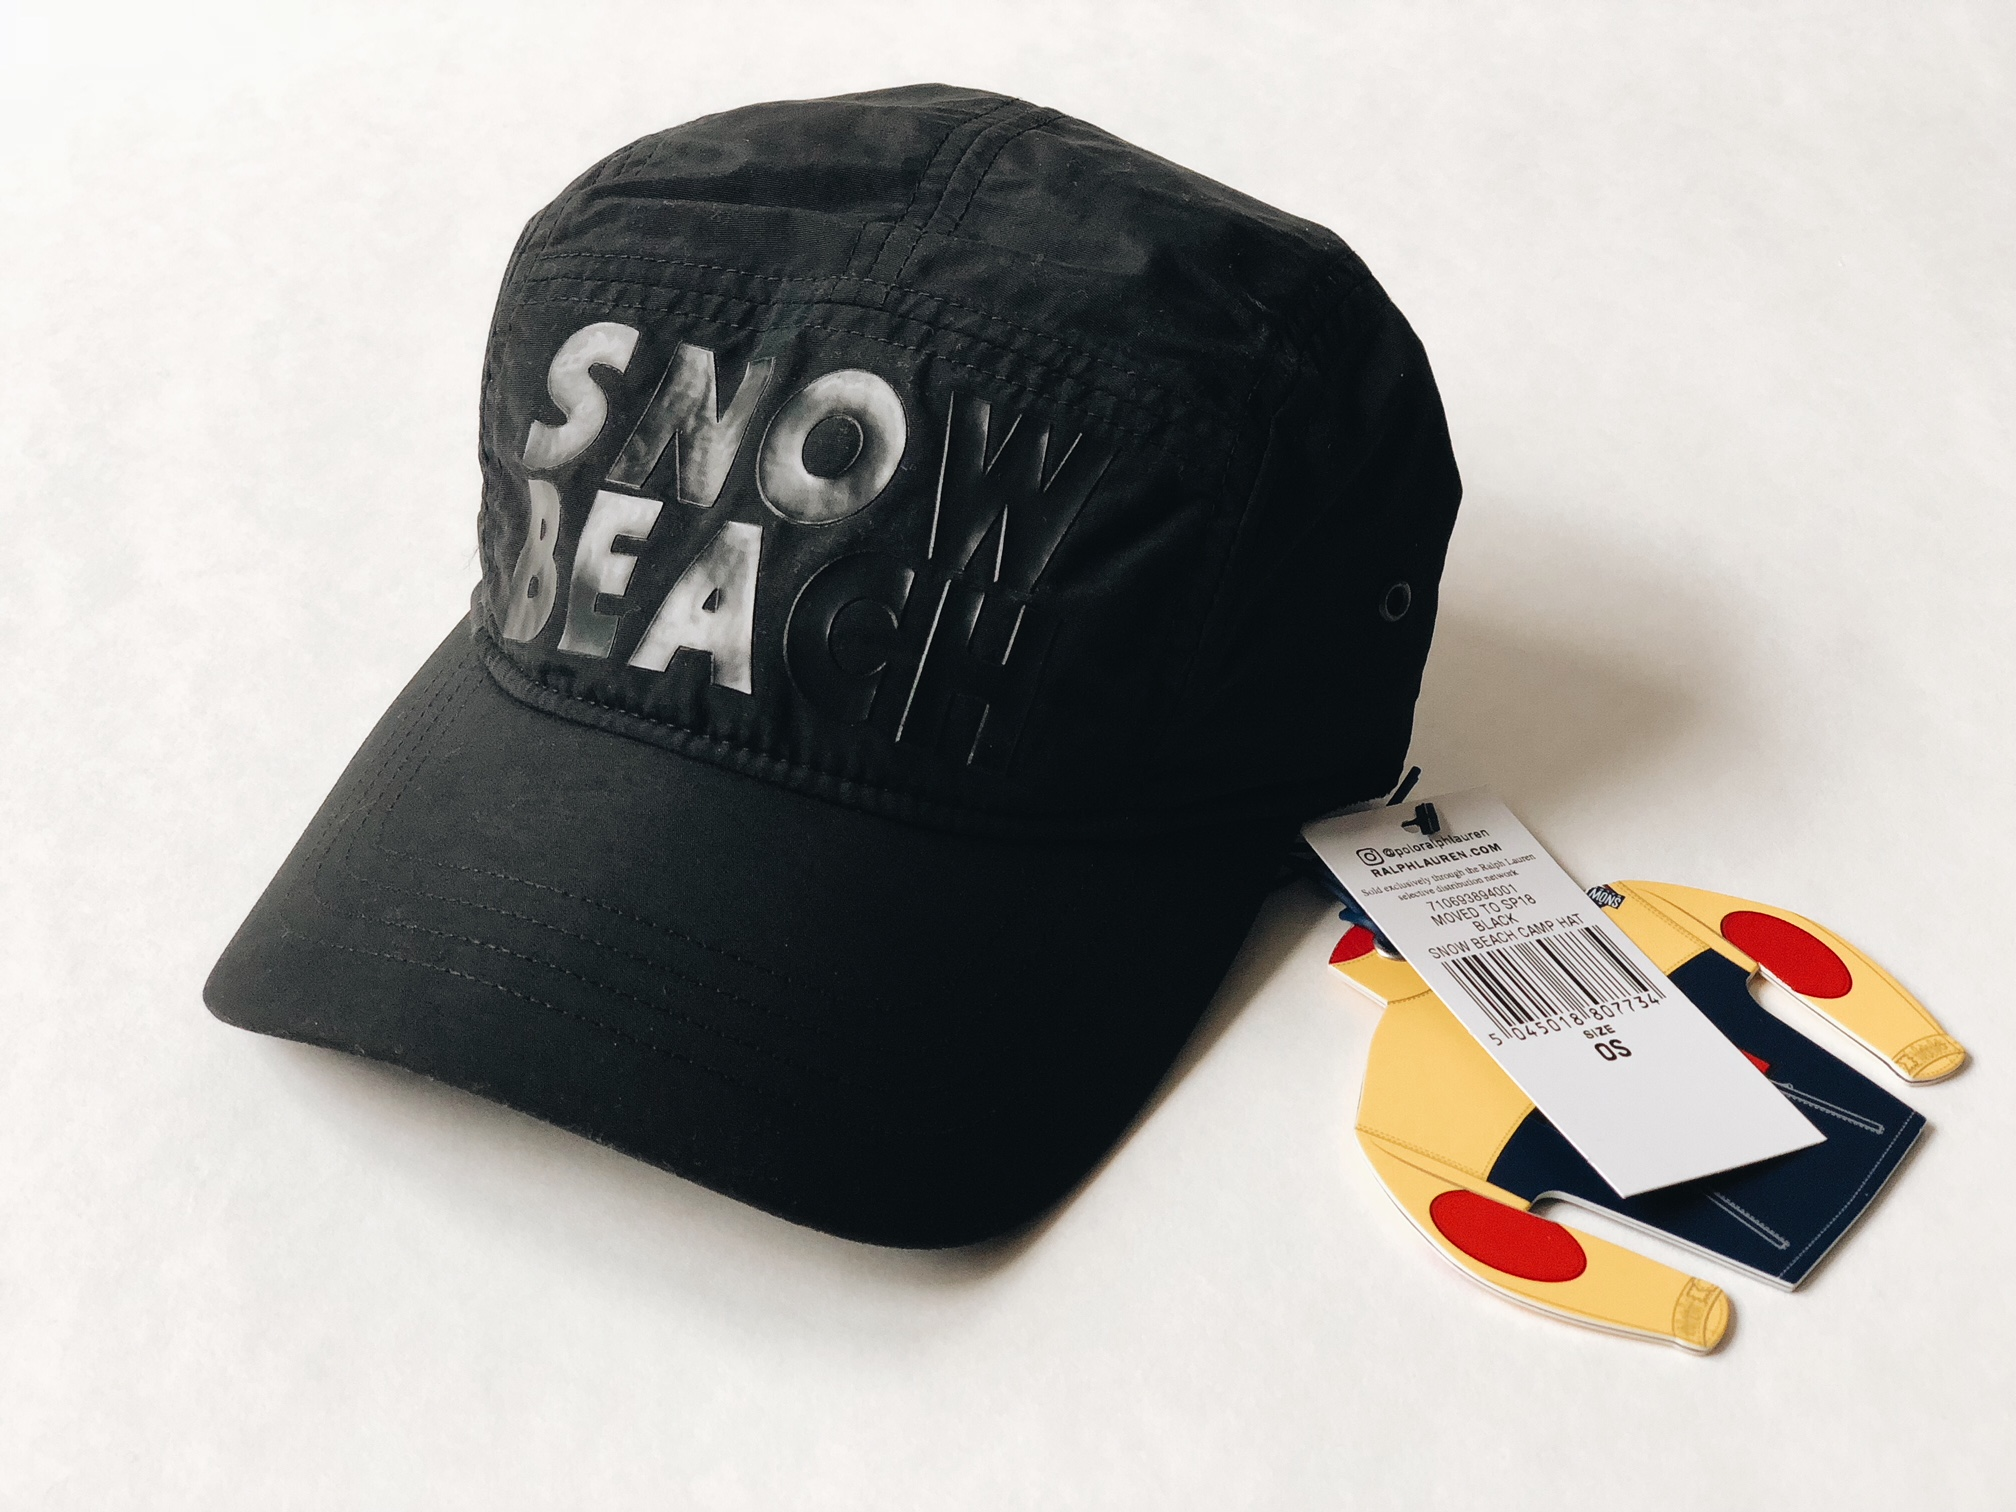 3a3e9e3311d Polo Ralph Lauren SNOW BEACH B W  SZ OS  CAMP CAP HAT NYLON MULTI BLACK  WHITE COLD WAVE STADIUM Size one size - Hats for Sale - Grailed